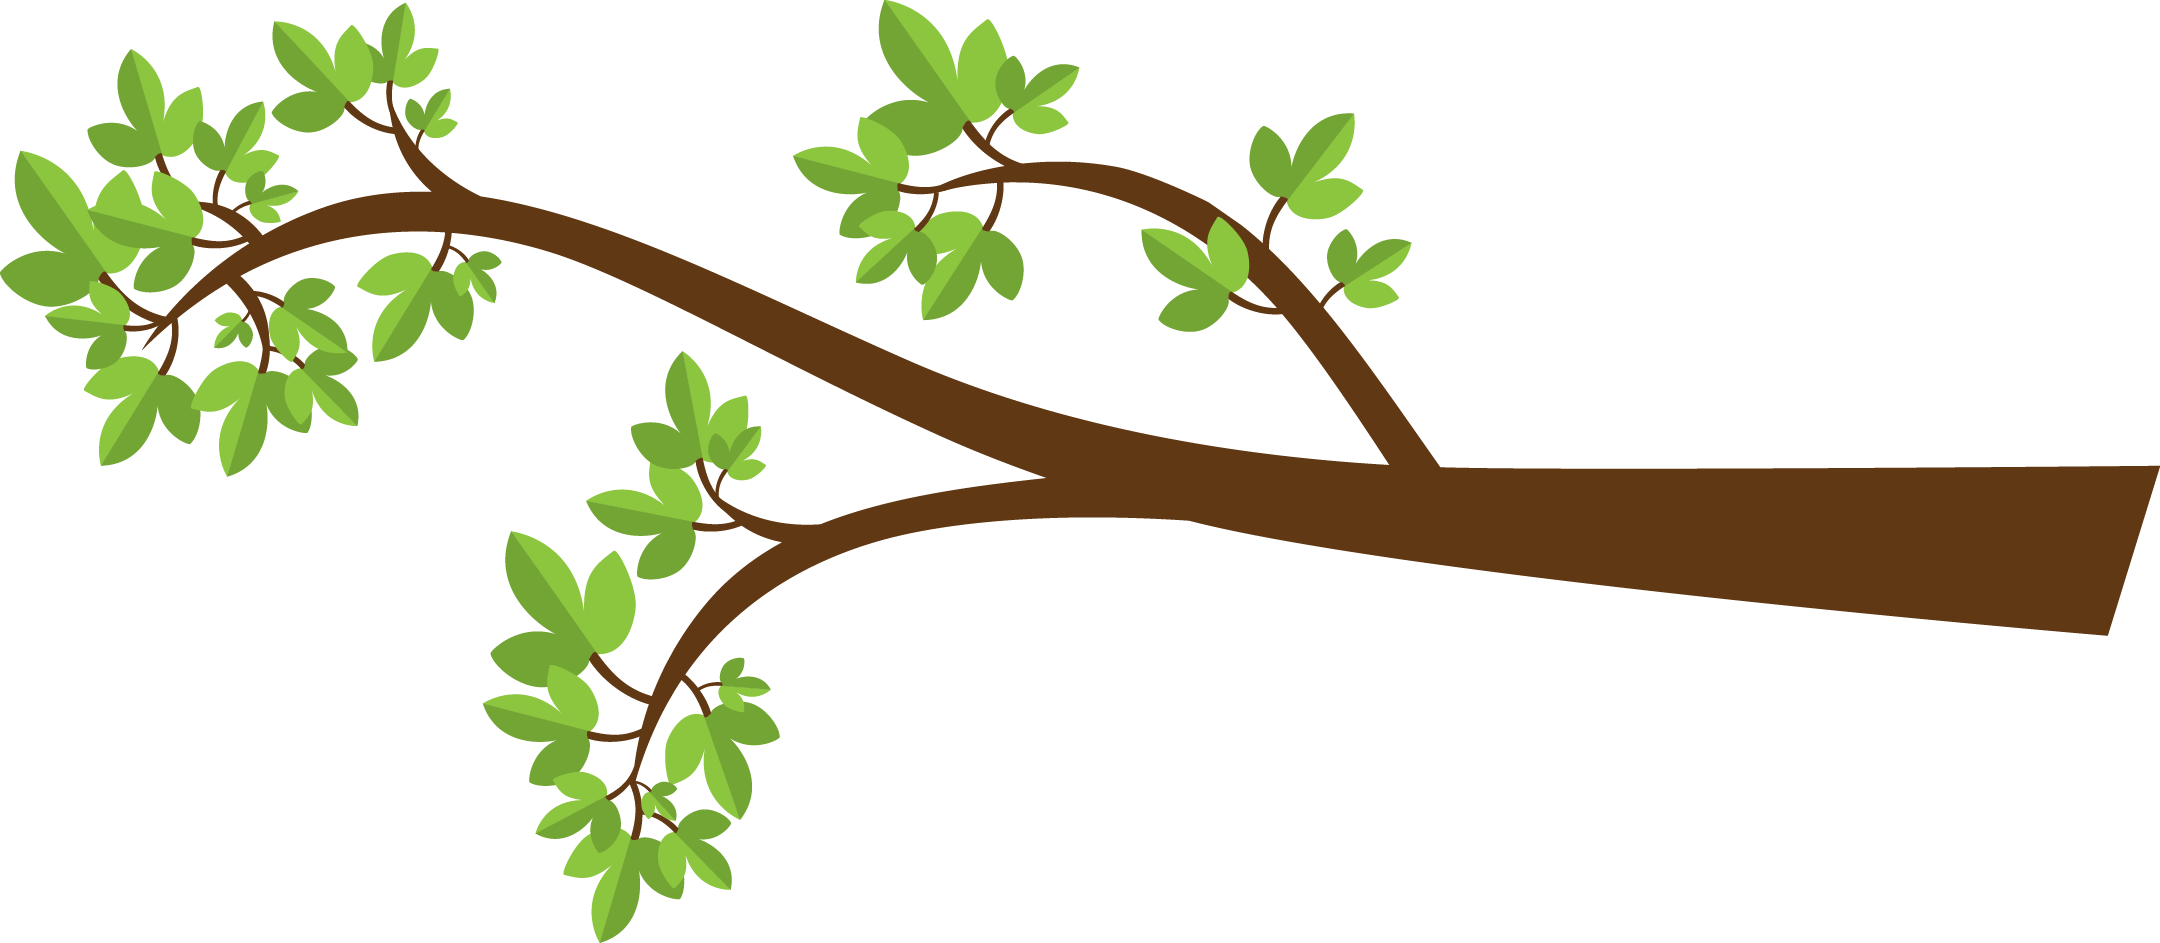 Collection green branch cliparts. Leaf clipart twig